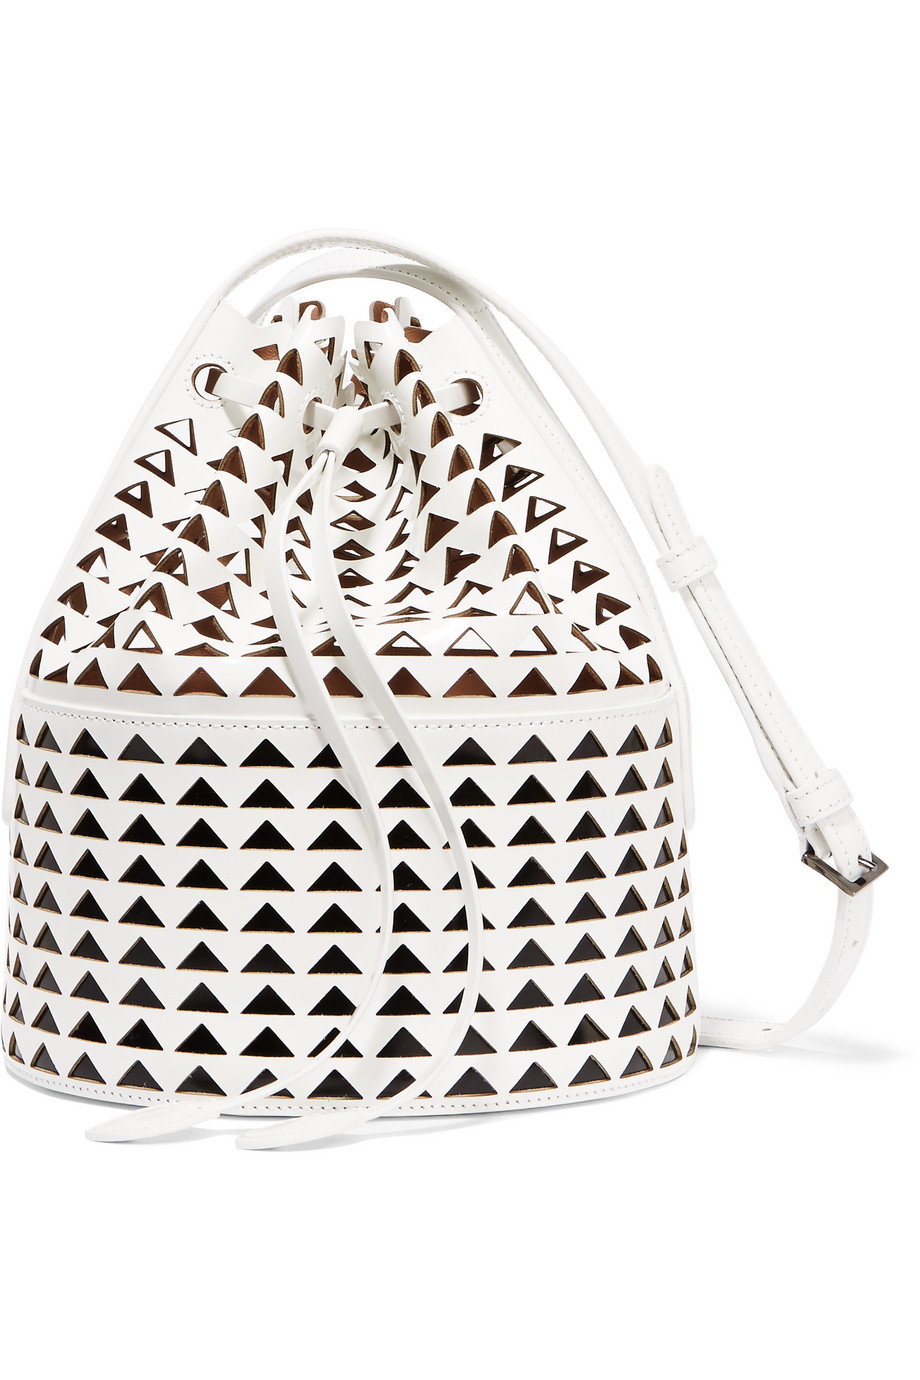 Alaïa Laser-Cut Glossed-Leather Bucket Bag, White, Women's